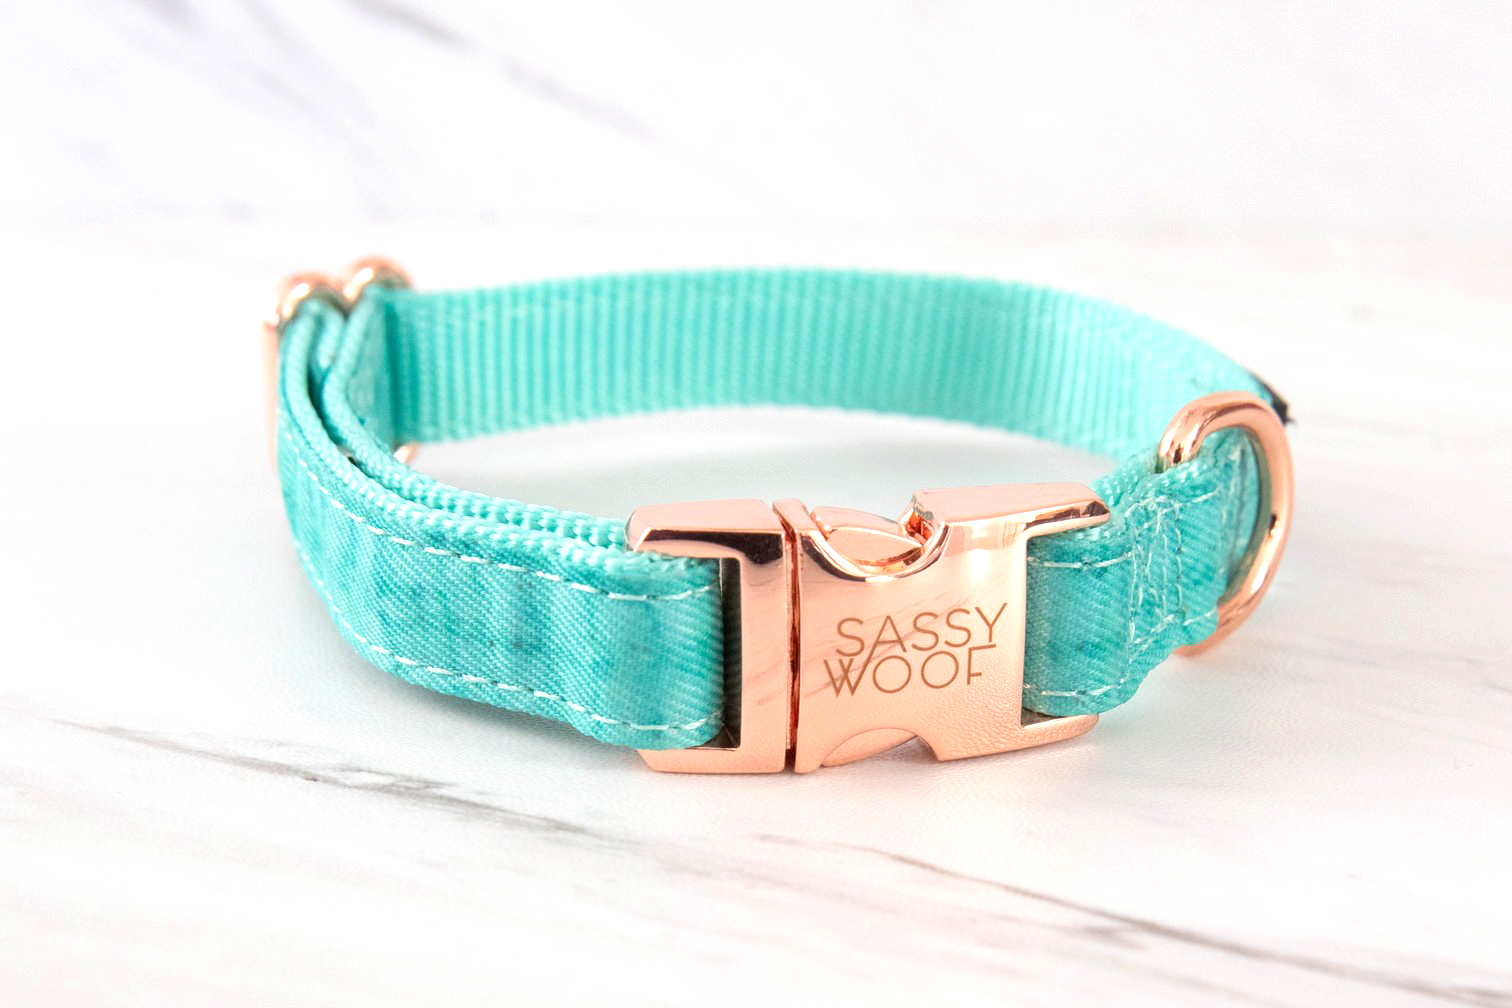 Wag Your Teal Dog Collar By Sassy Woof on The Dapple: Dog Lifestyle Site